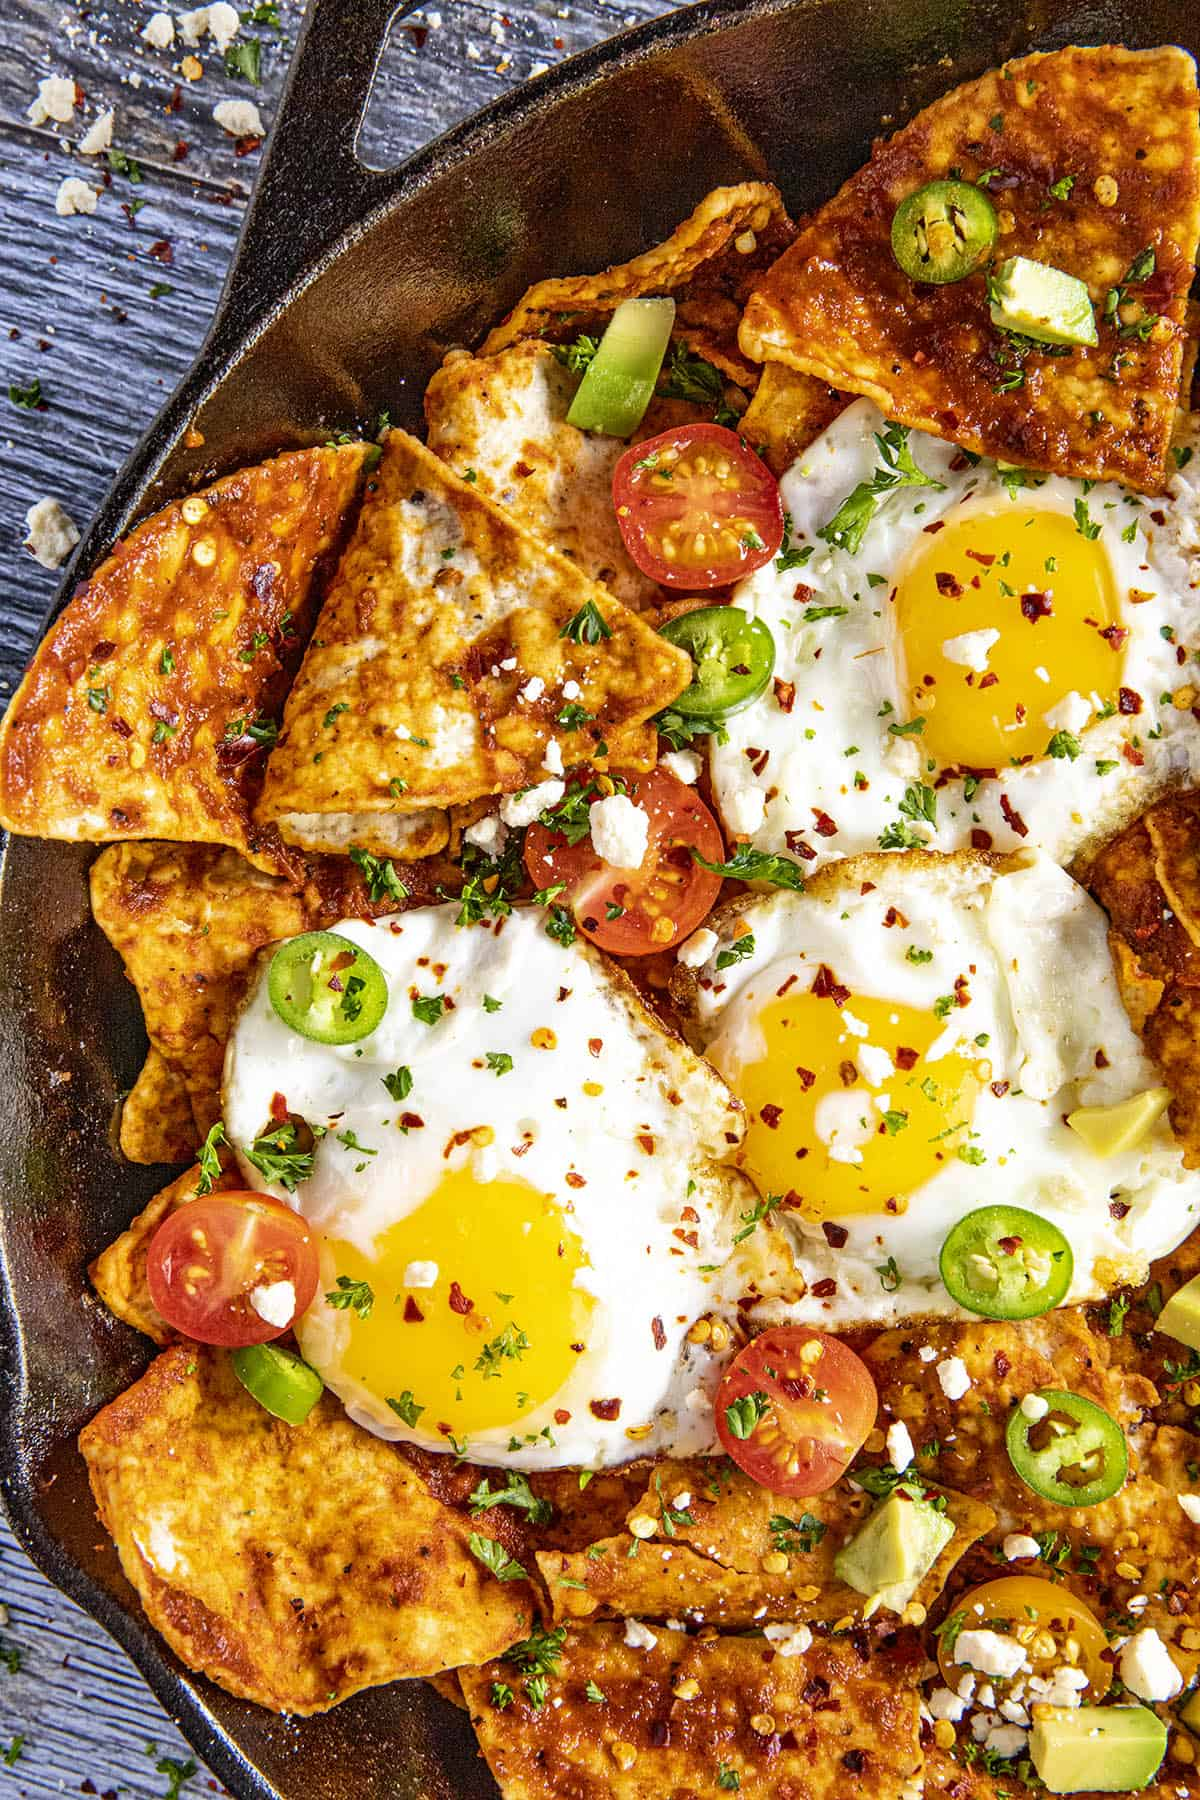 Big scoops of saucy chilaquiles rojos with fried eggs